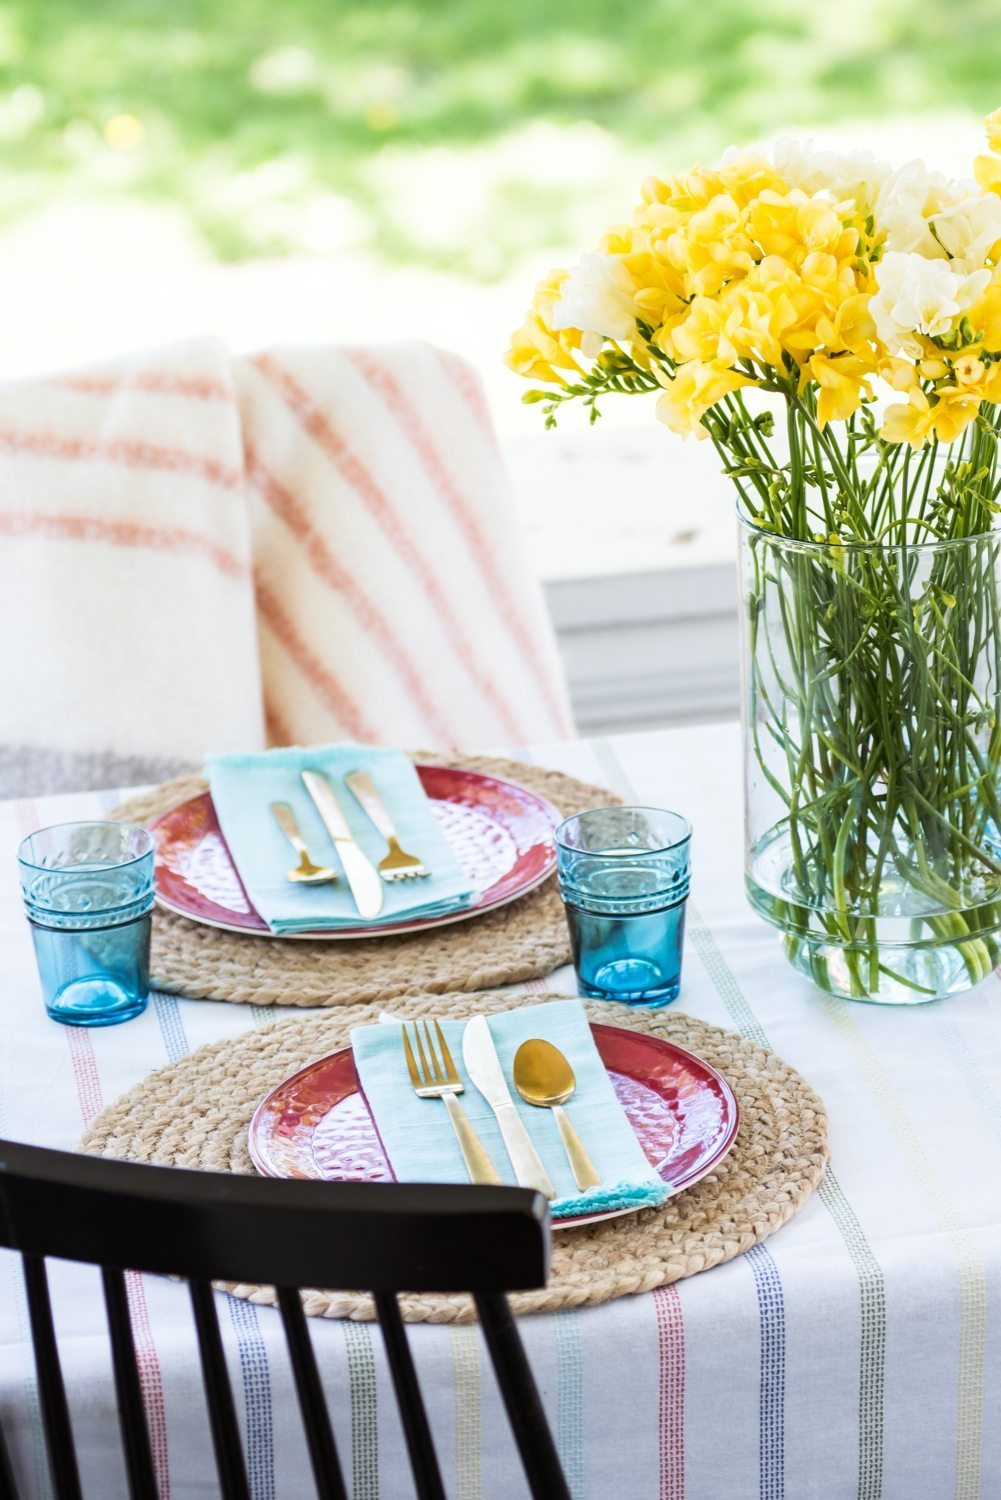 Hosting a Chic Patriotic Picnic   Entertaining ideas, party ideas, picnic ideas and more from @cydconverse